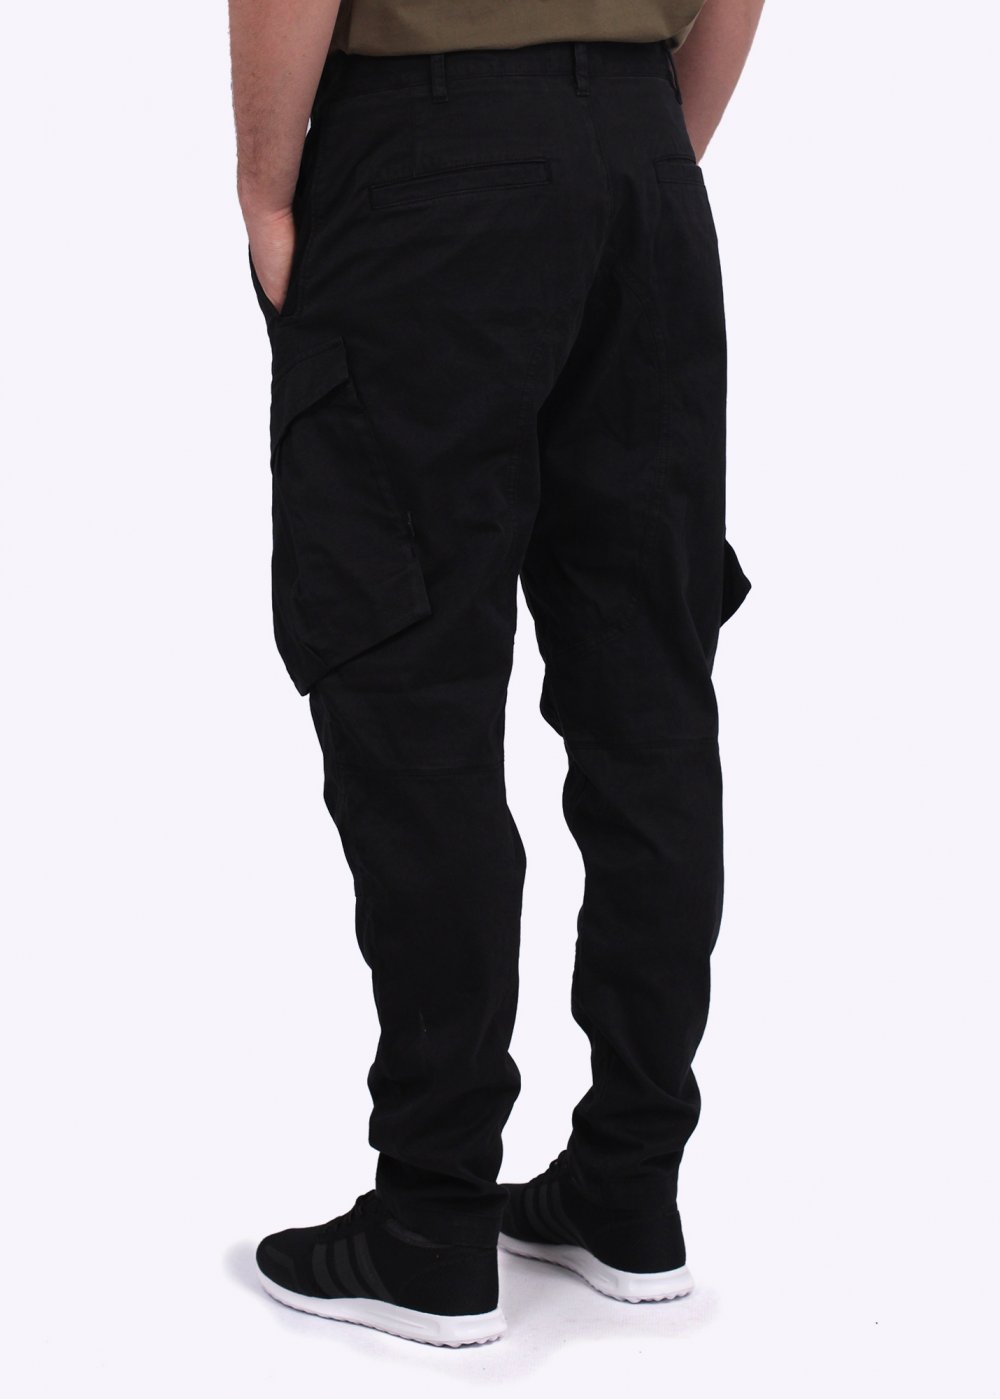 Guide Gear Mens Outdoor Cargo Pants  677832 Jeans